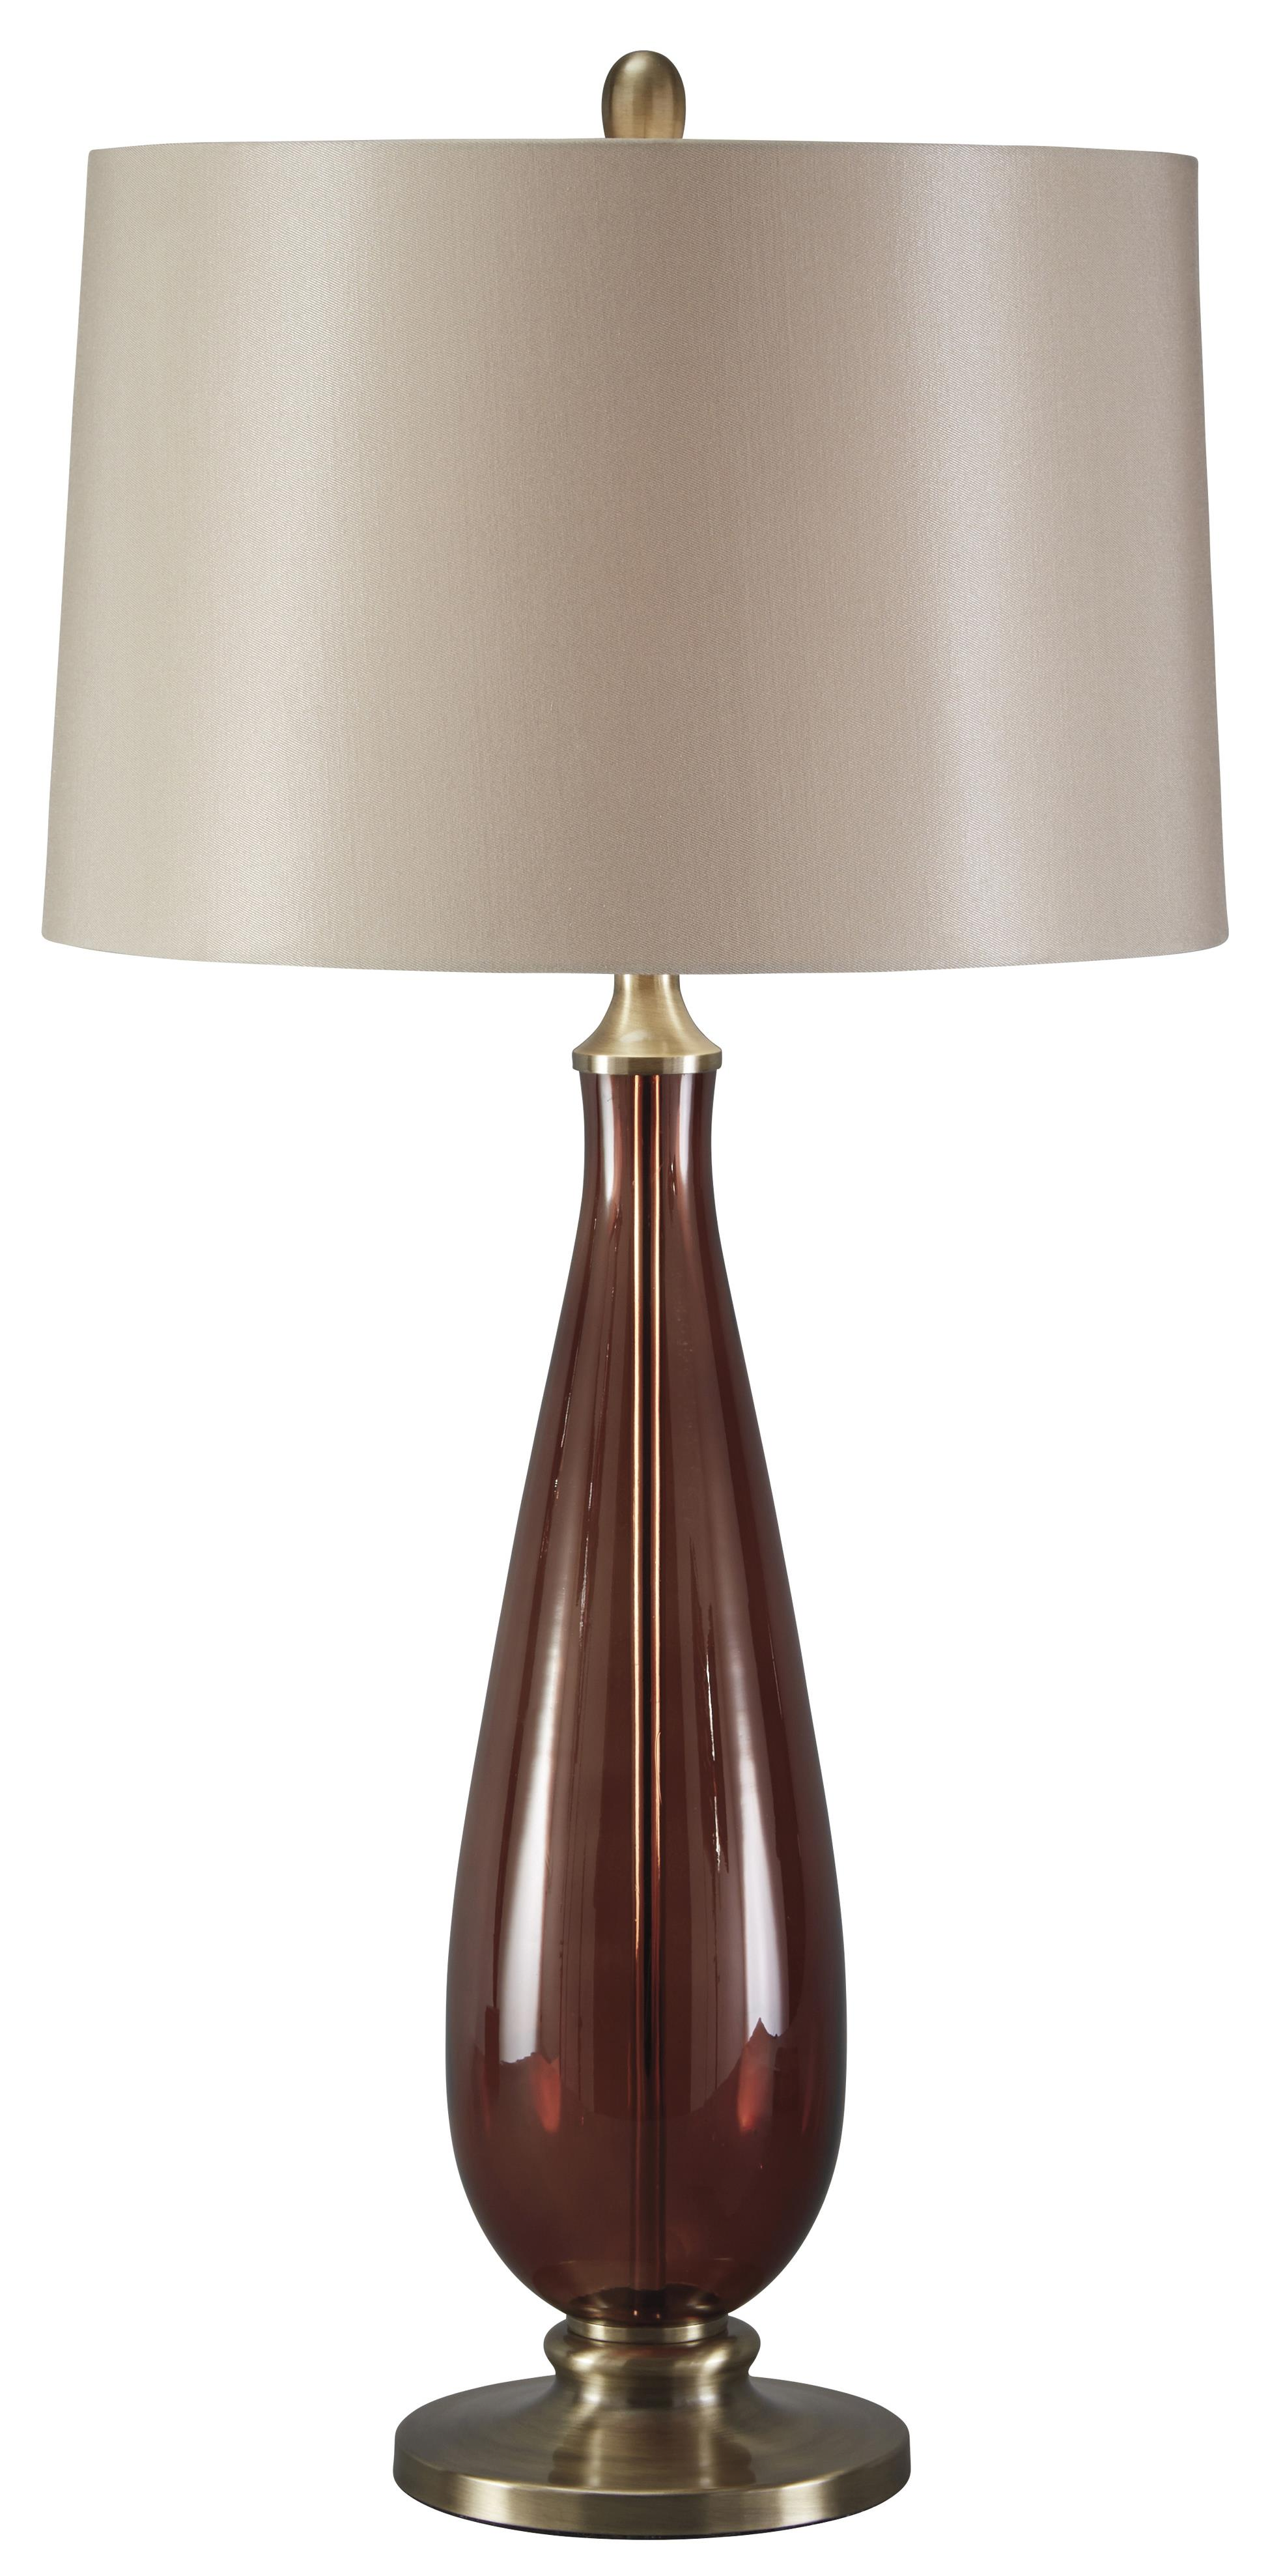 Signature design by ashley lamps traditional classics for Archimoon k table lamp